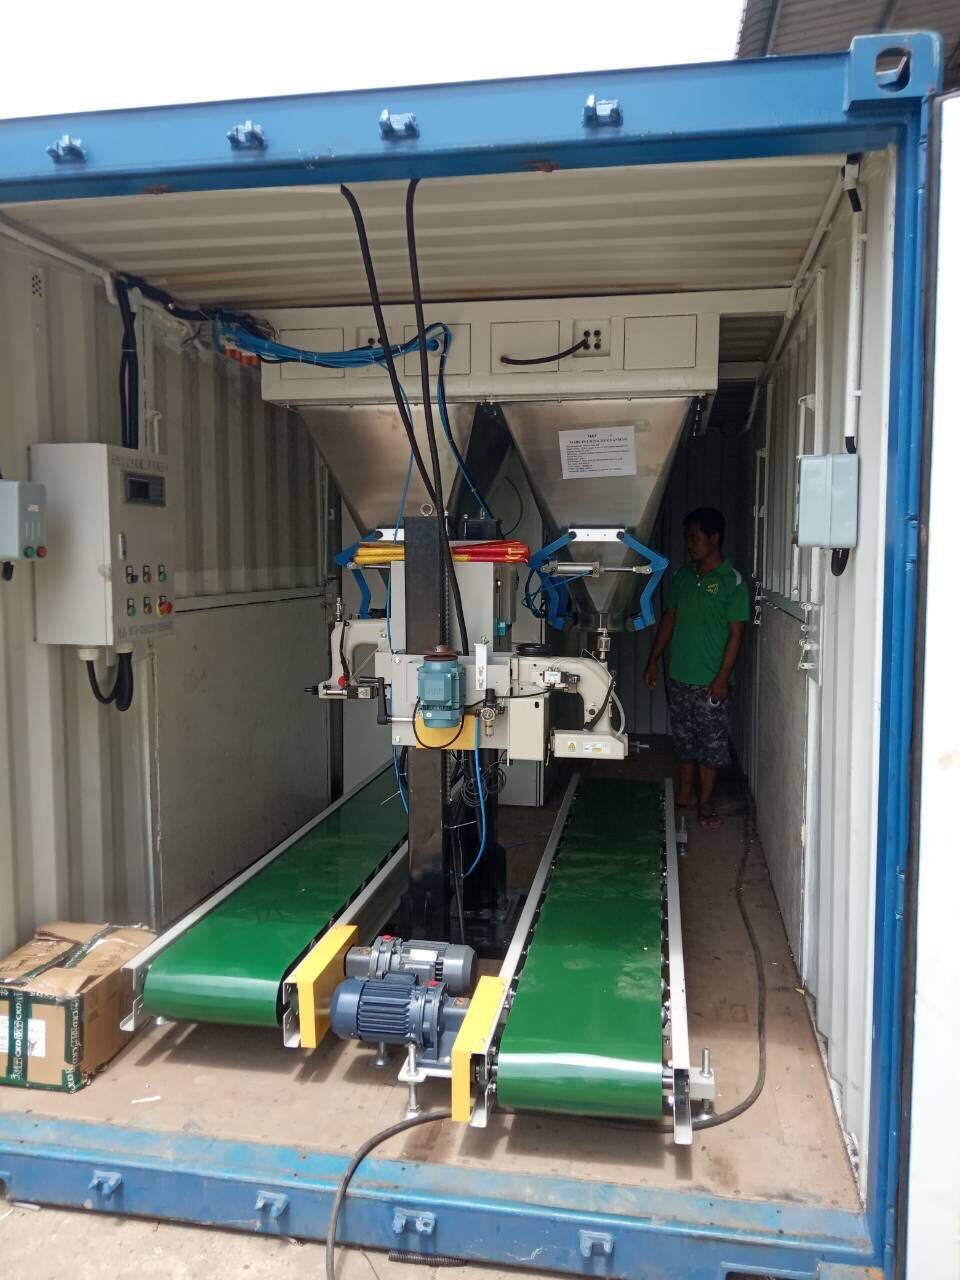 MOBILE RICE BAGGING MACHINES containerized bagging system Mobile Bagging Unit MOBILE BAGGING MACHINES for Grains, pulses, iodised salts, sugar Containerised bagging system